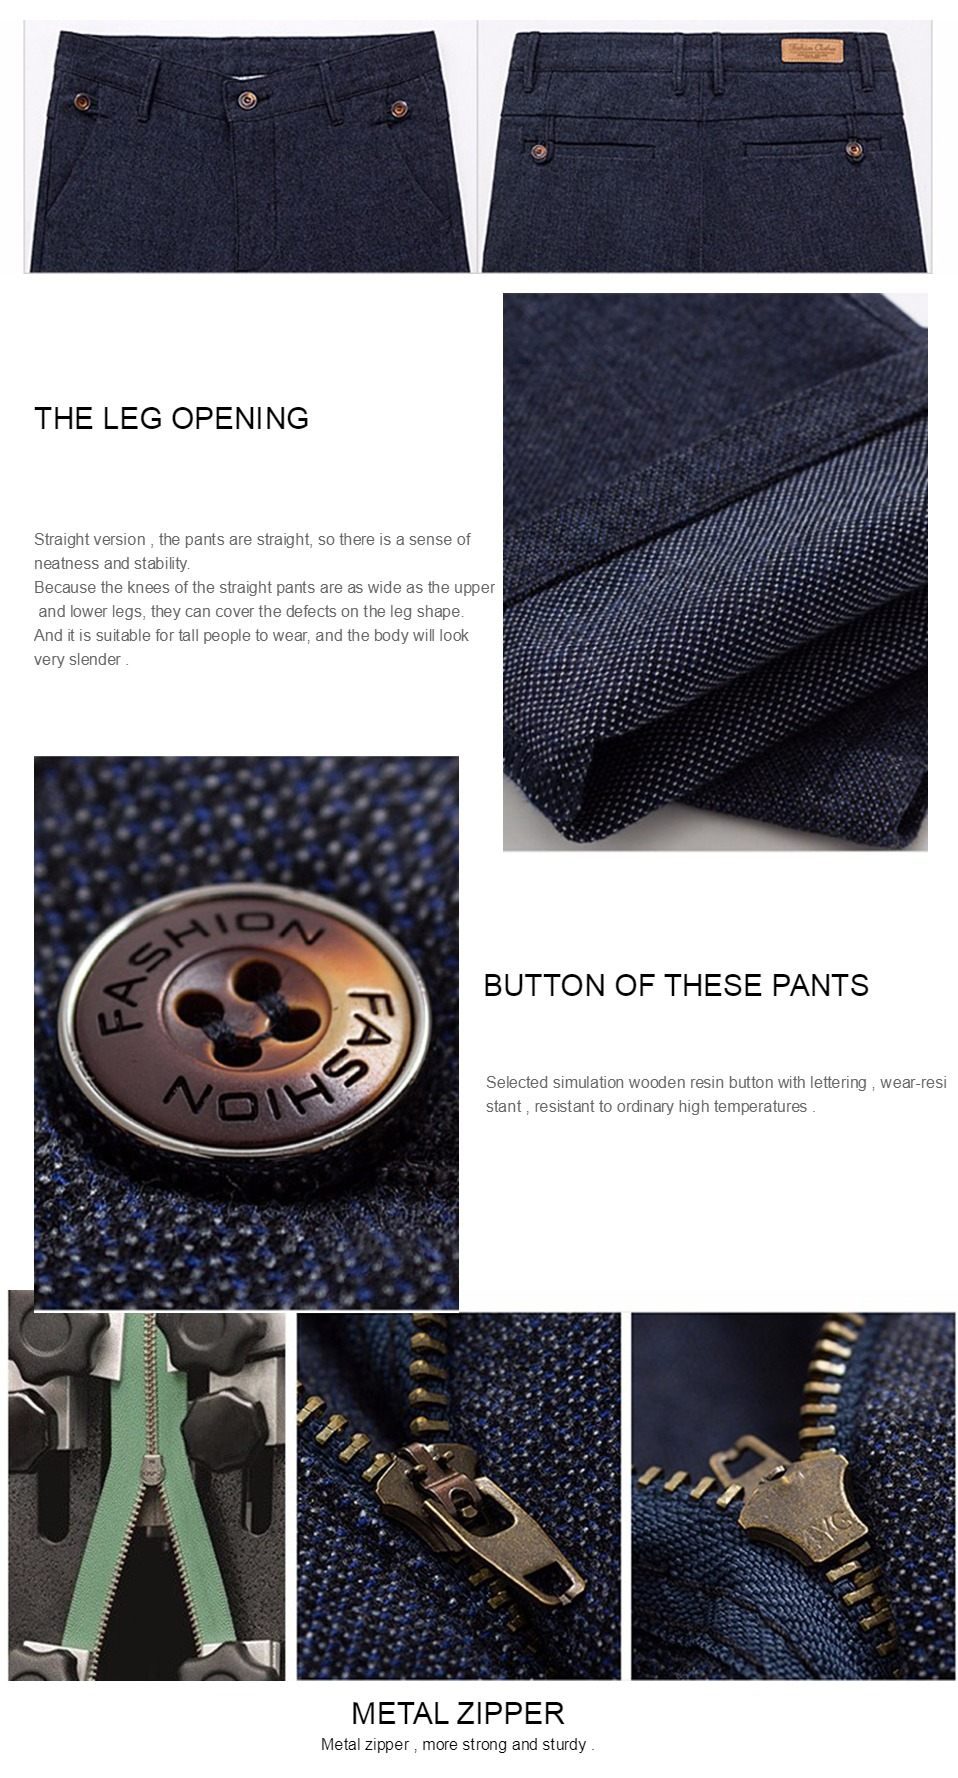 H8b8cc36bc3cc407f93606a70d0981231m HCYX Brand 2019 four season Classic High quality Men's Casual Pants Trousers Men Casual Pants Business Straight Size 38